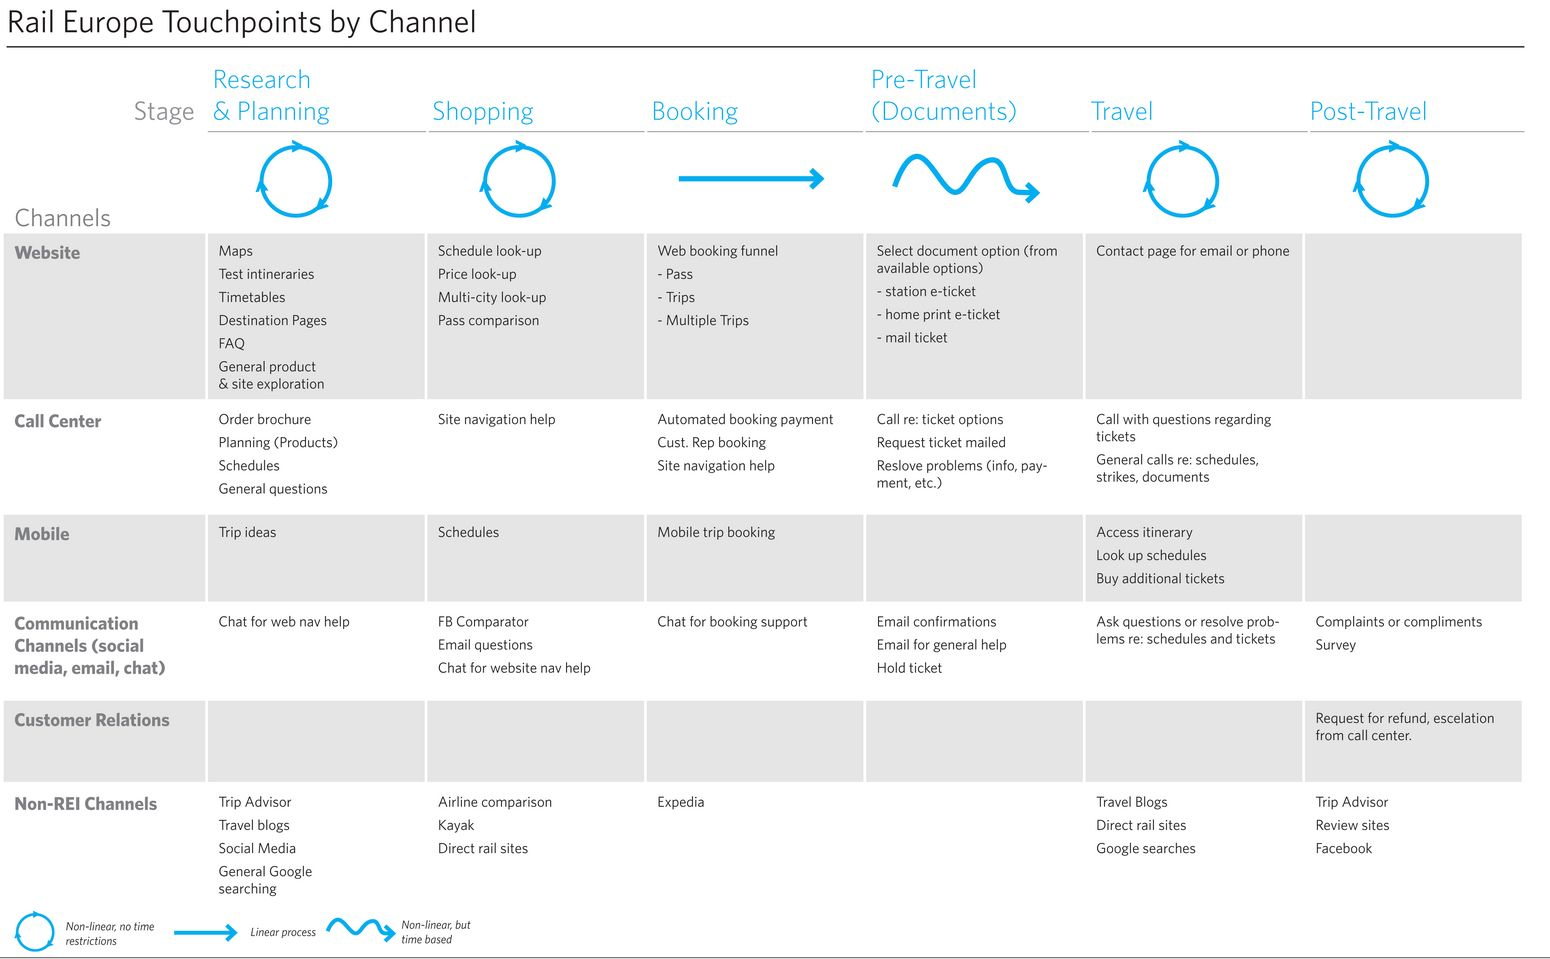 Rail Europe Touchpoints By Channel